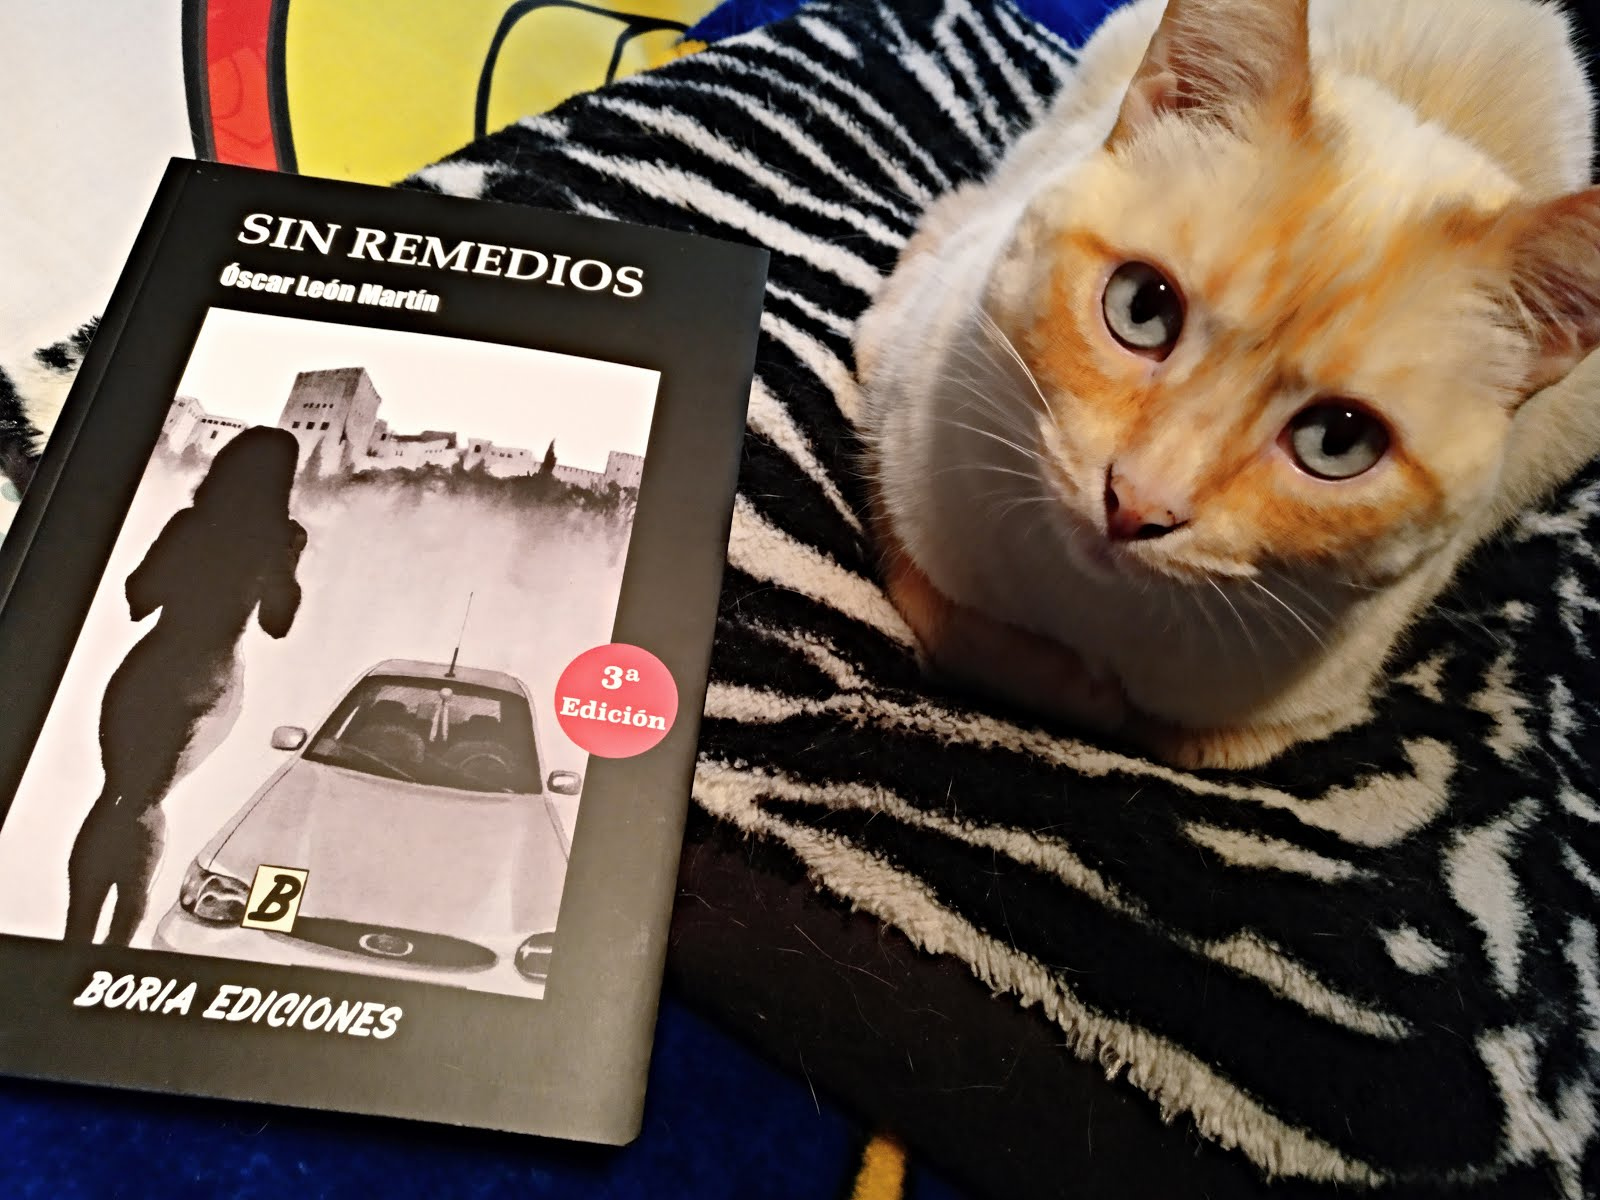 *Sin Remedios* By Óscar León Martín